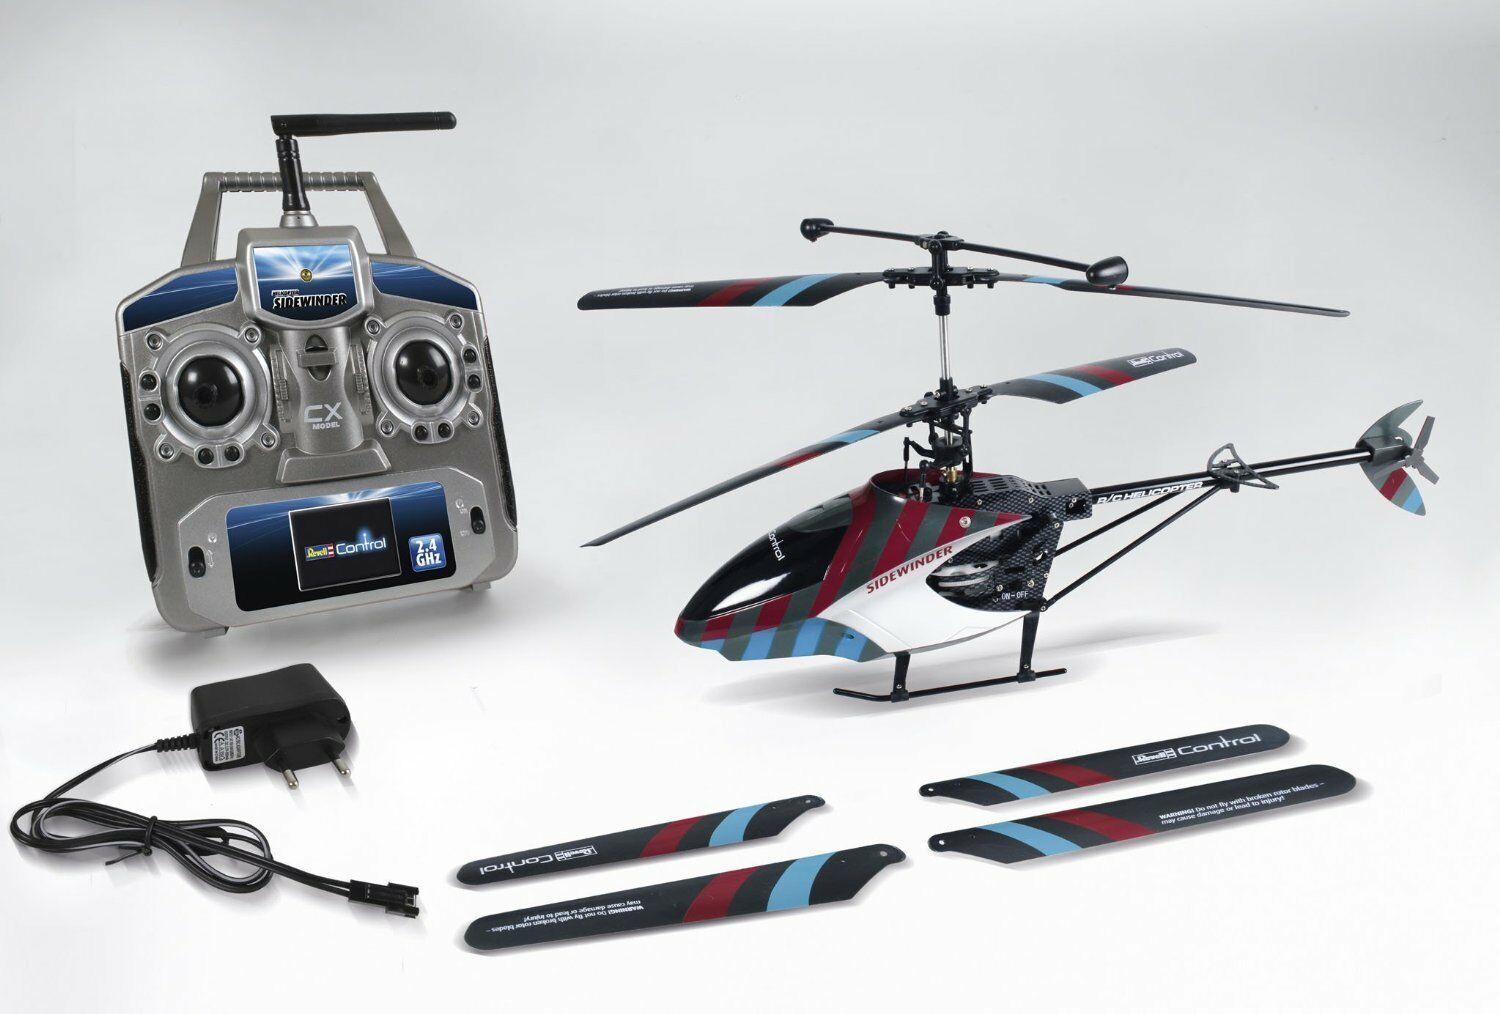 Helicopter  sidewinder  rtf 4ch ghz, REVELL CONTROL ELICOTTERO MODELLO, 24095